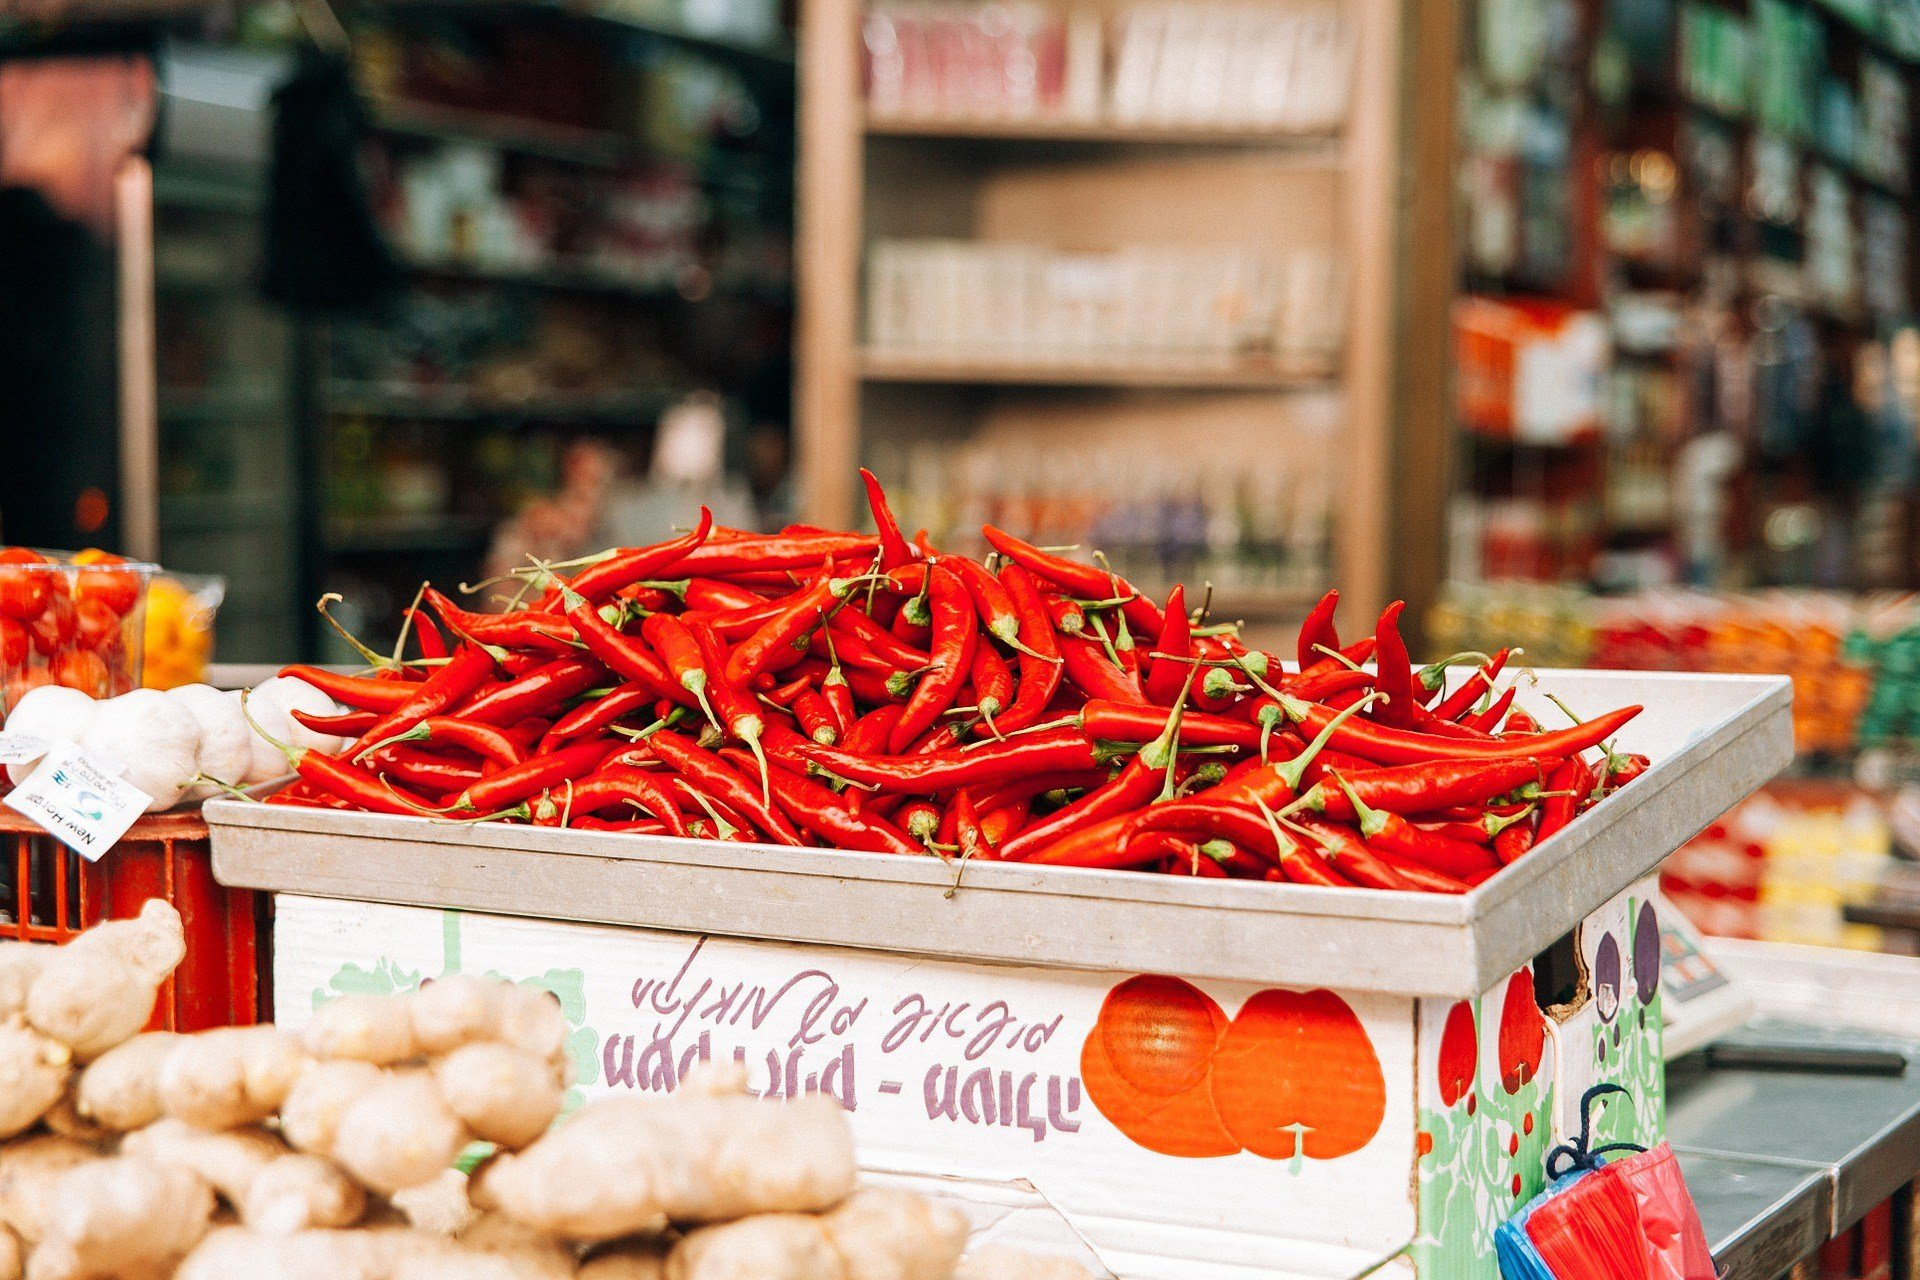 Chillies in a box.